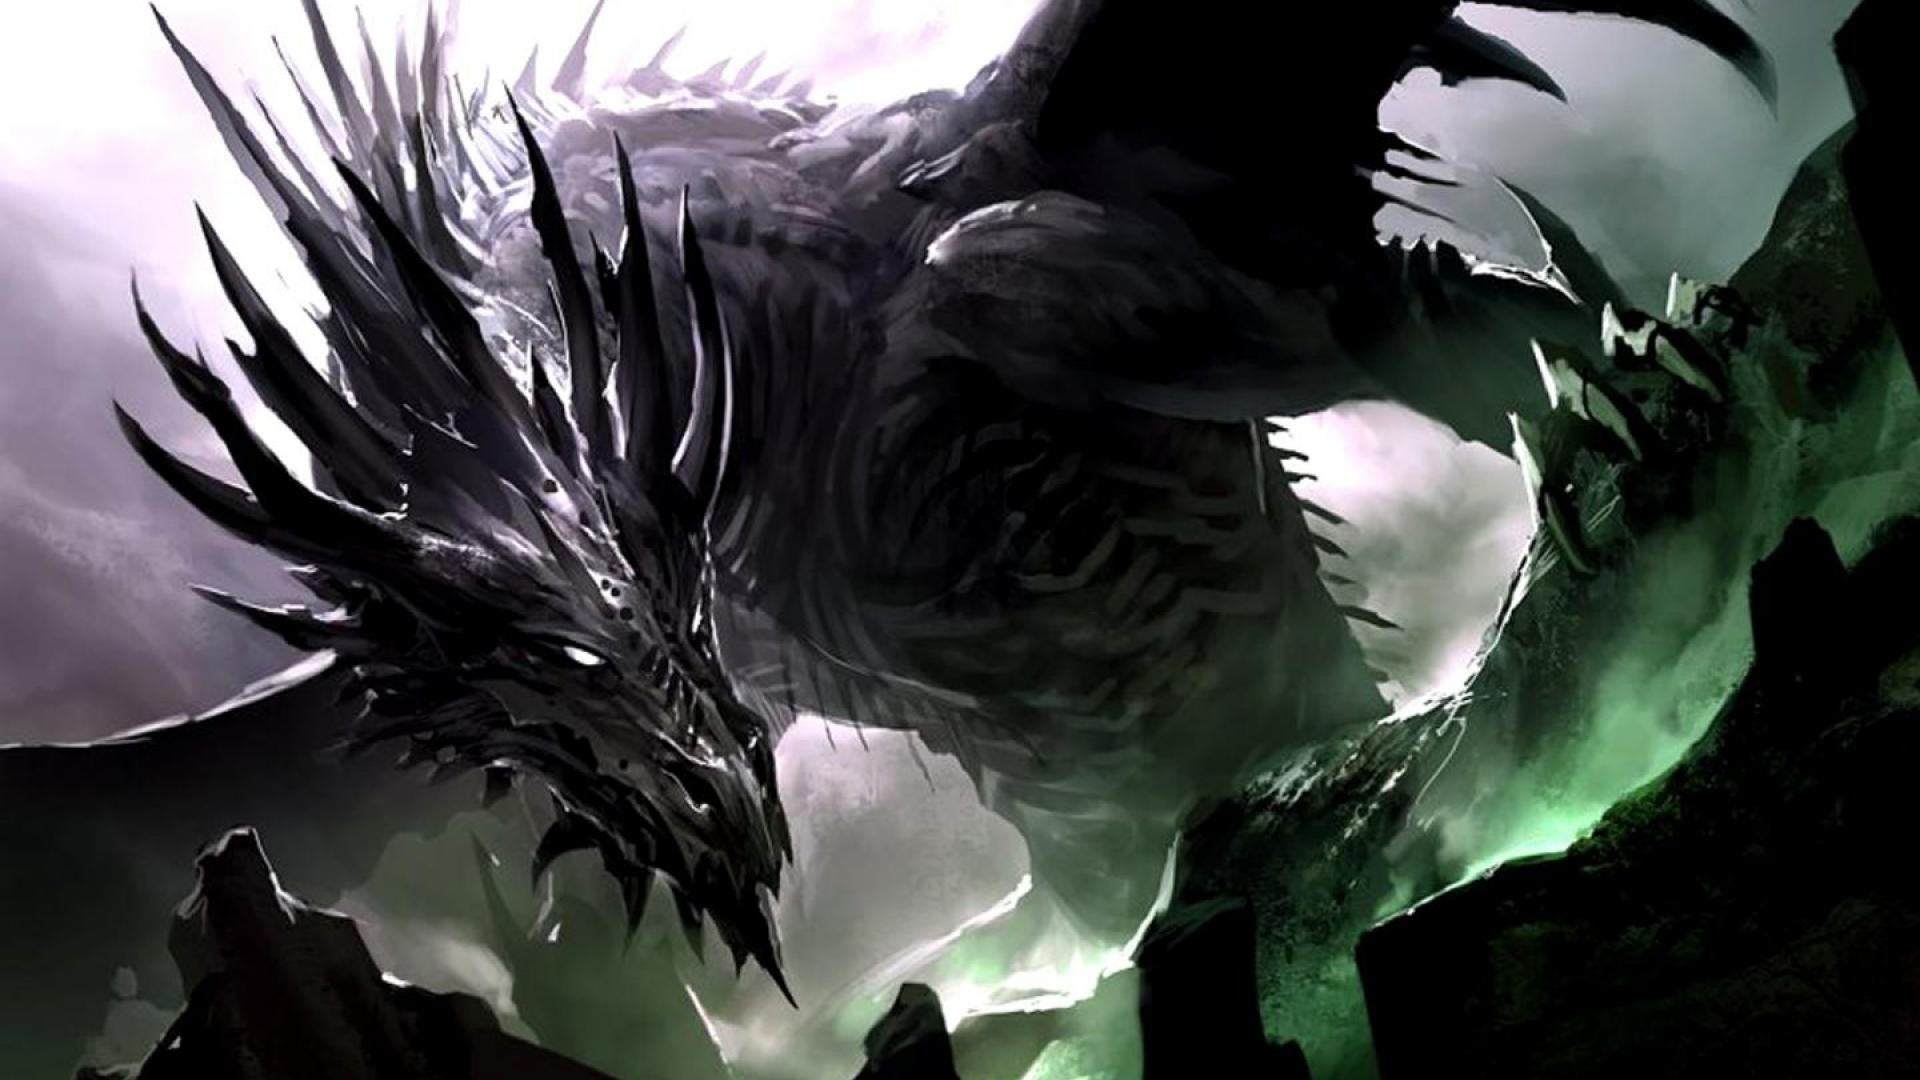 dragon wallpaper 1920x1080 download free cool backgrounds for